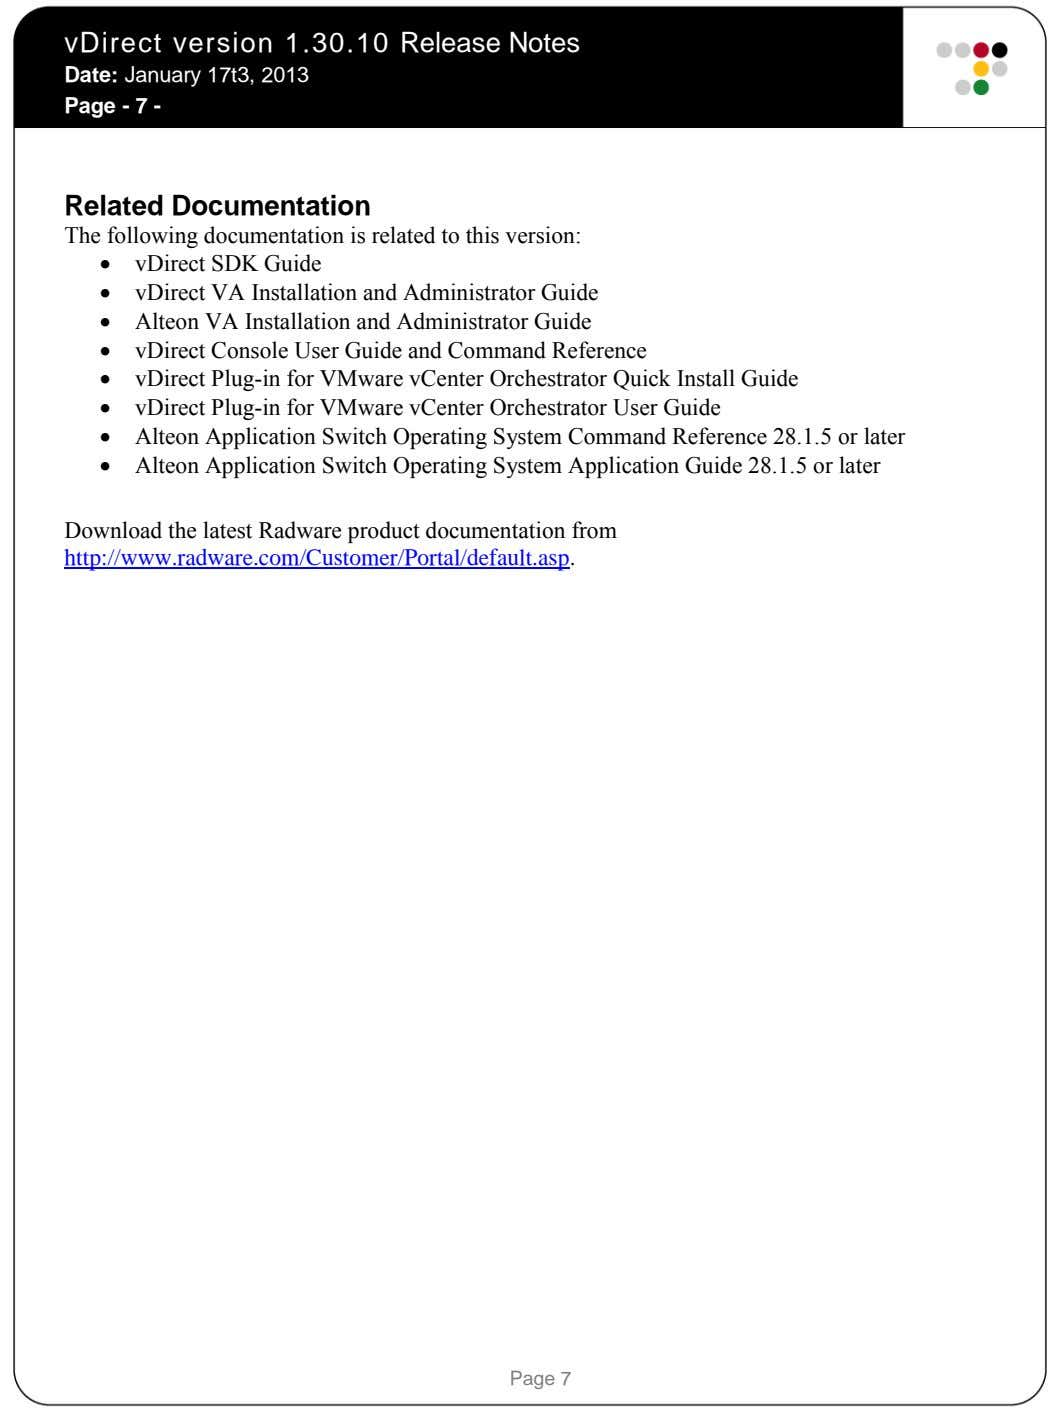 vDirect version 1.30.10 Release Notes Date: January 17t3, 2013 Page - 7 - Related Documentation